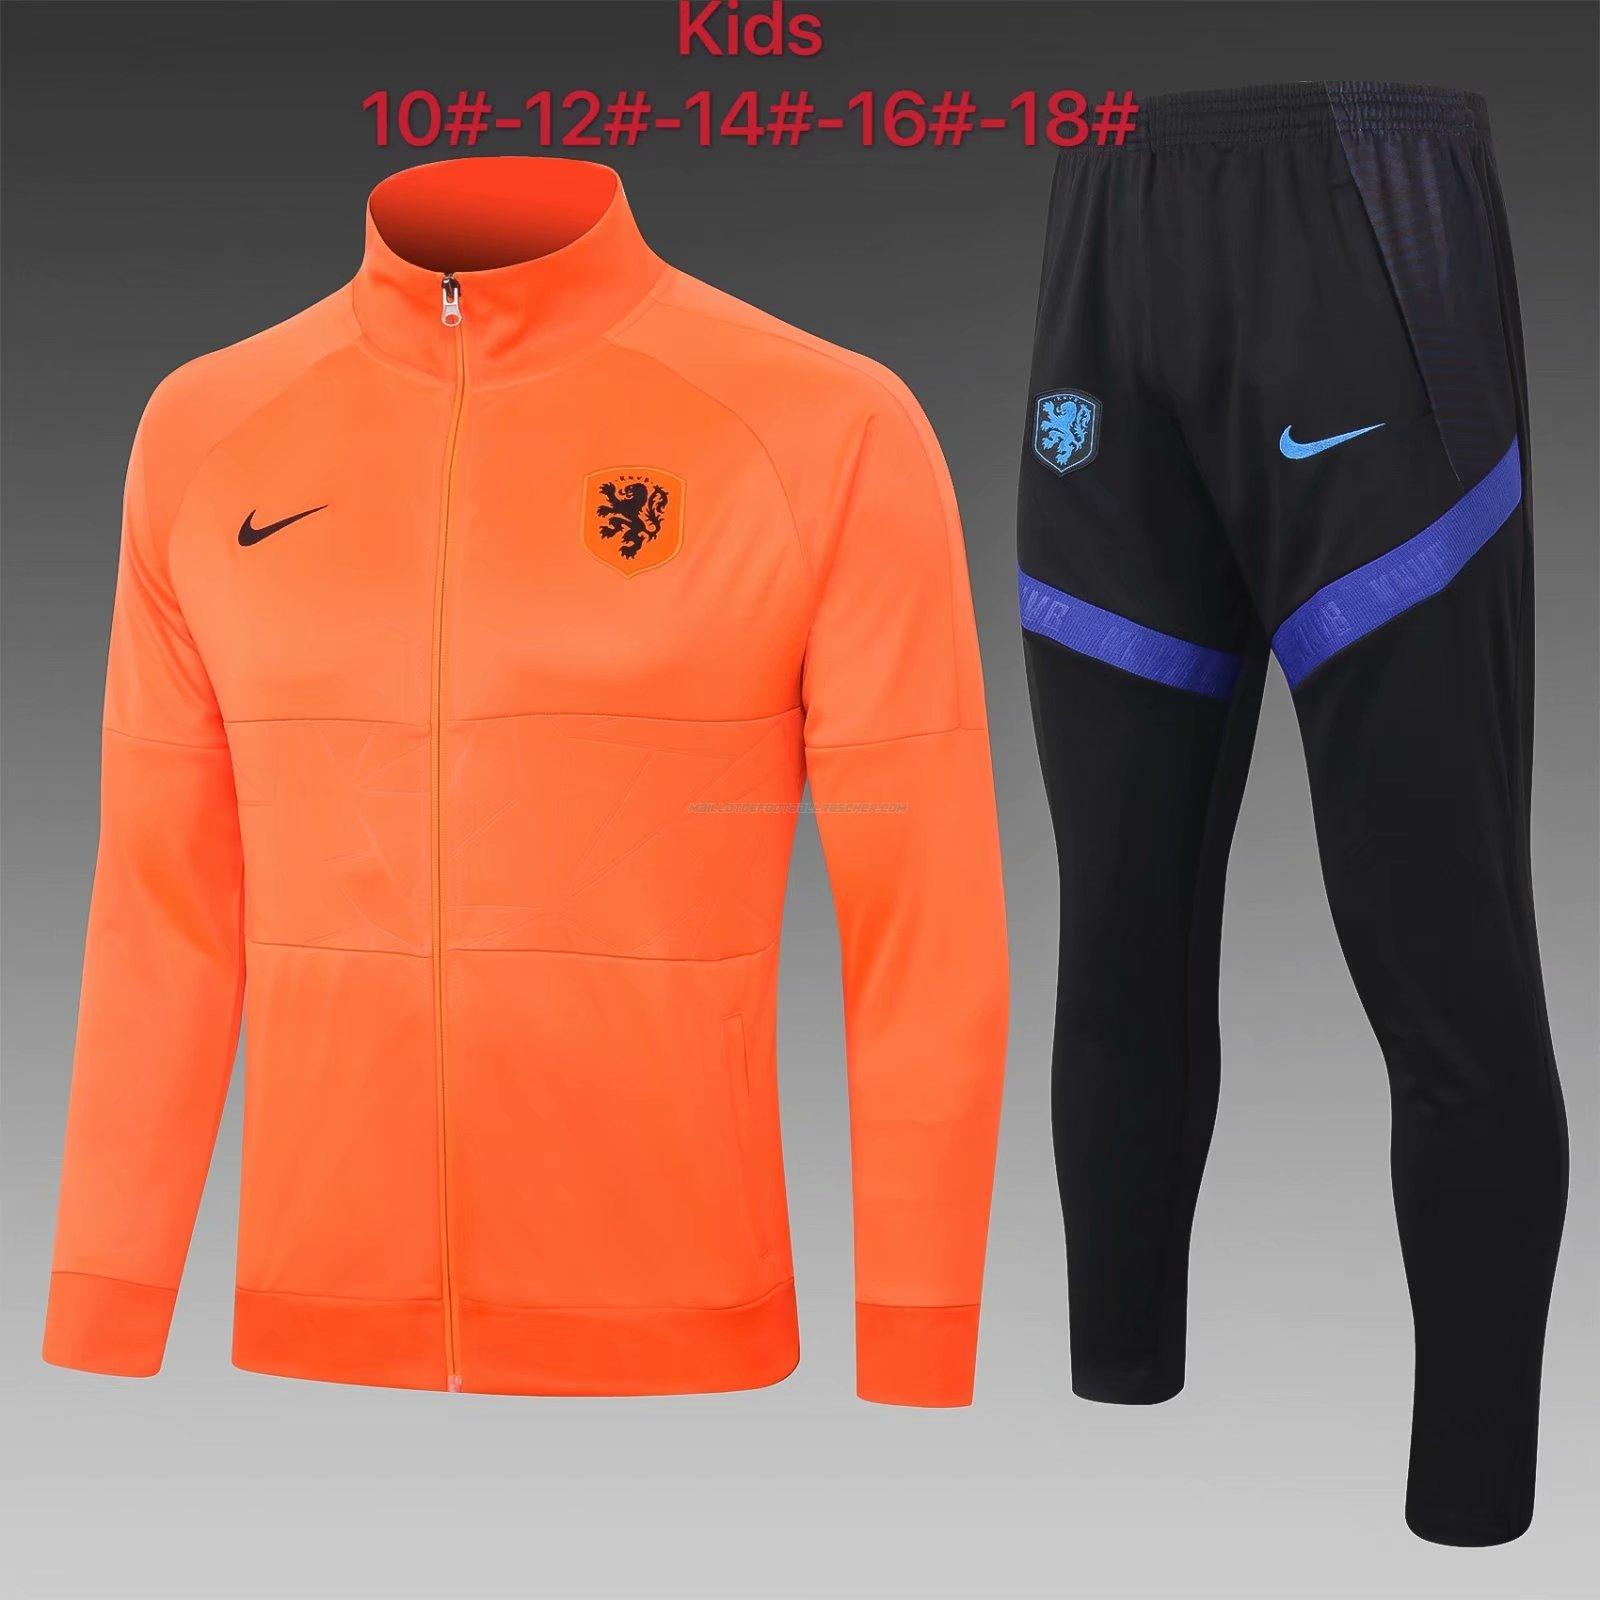 veste enfant hollande orange 2021